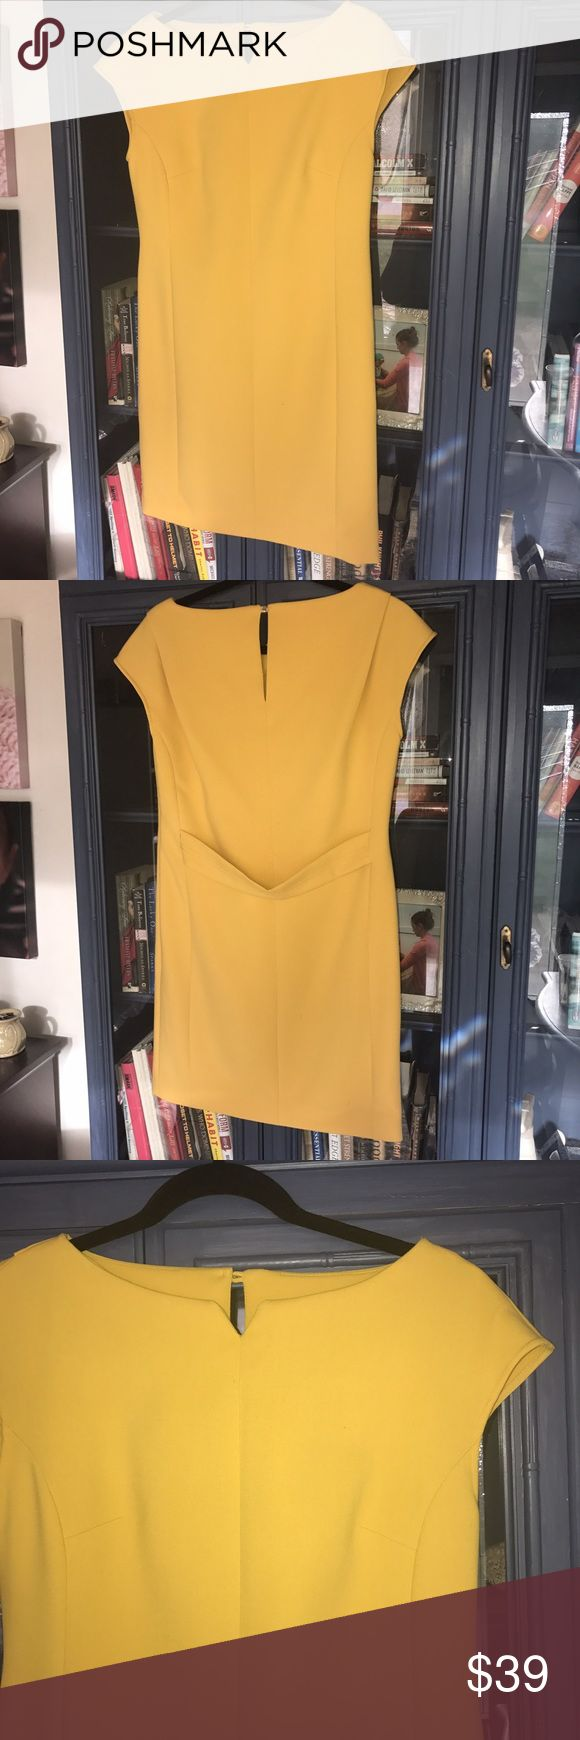 Solid yellow Ann Taylor office wear to work Pretty boat cut neck line, solid yellow dress from Ann Taylor. Treat color to contrast tan skin or wig accessories going into fall season. Pair with black tights for the winter! Never worn. New without tags. Ann Taylor Dresses